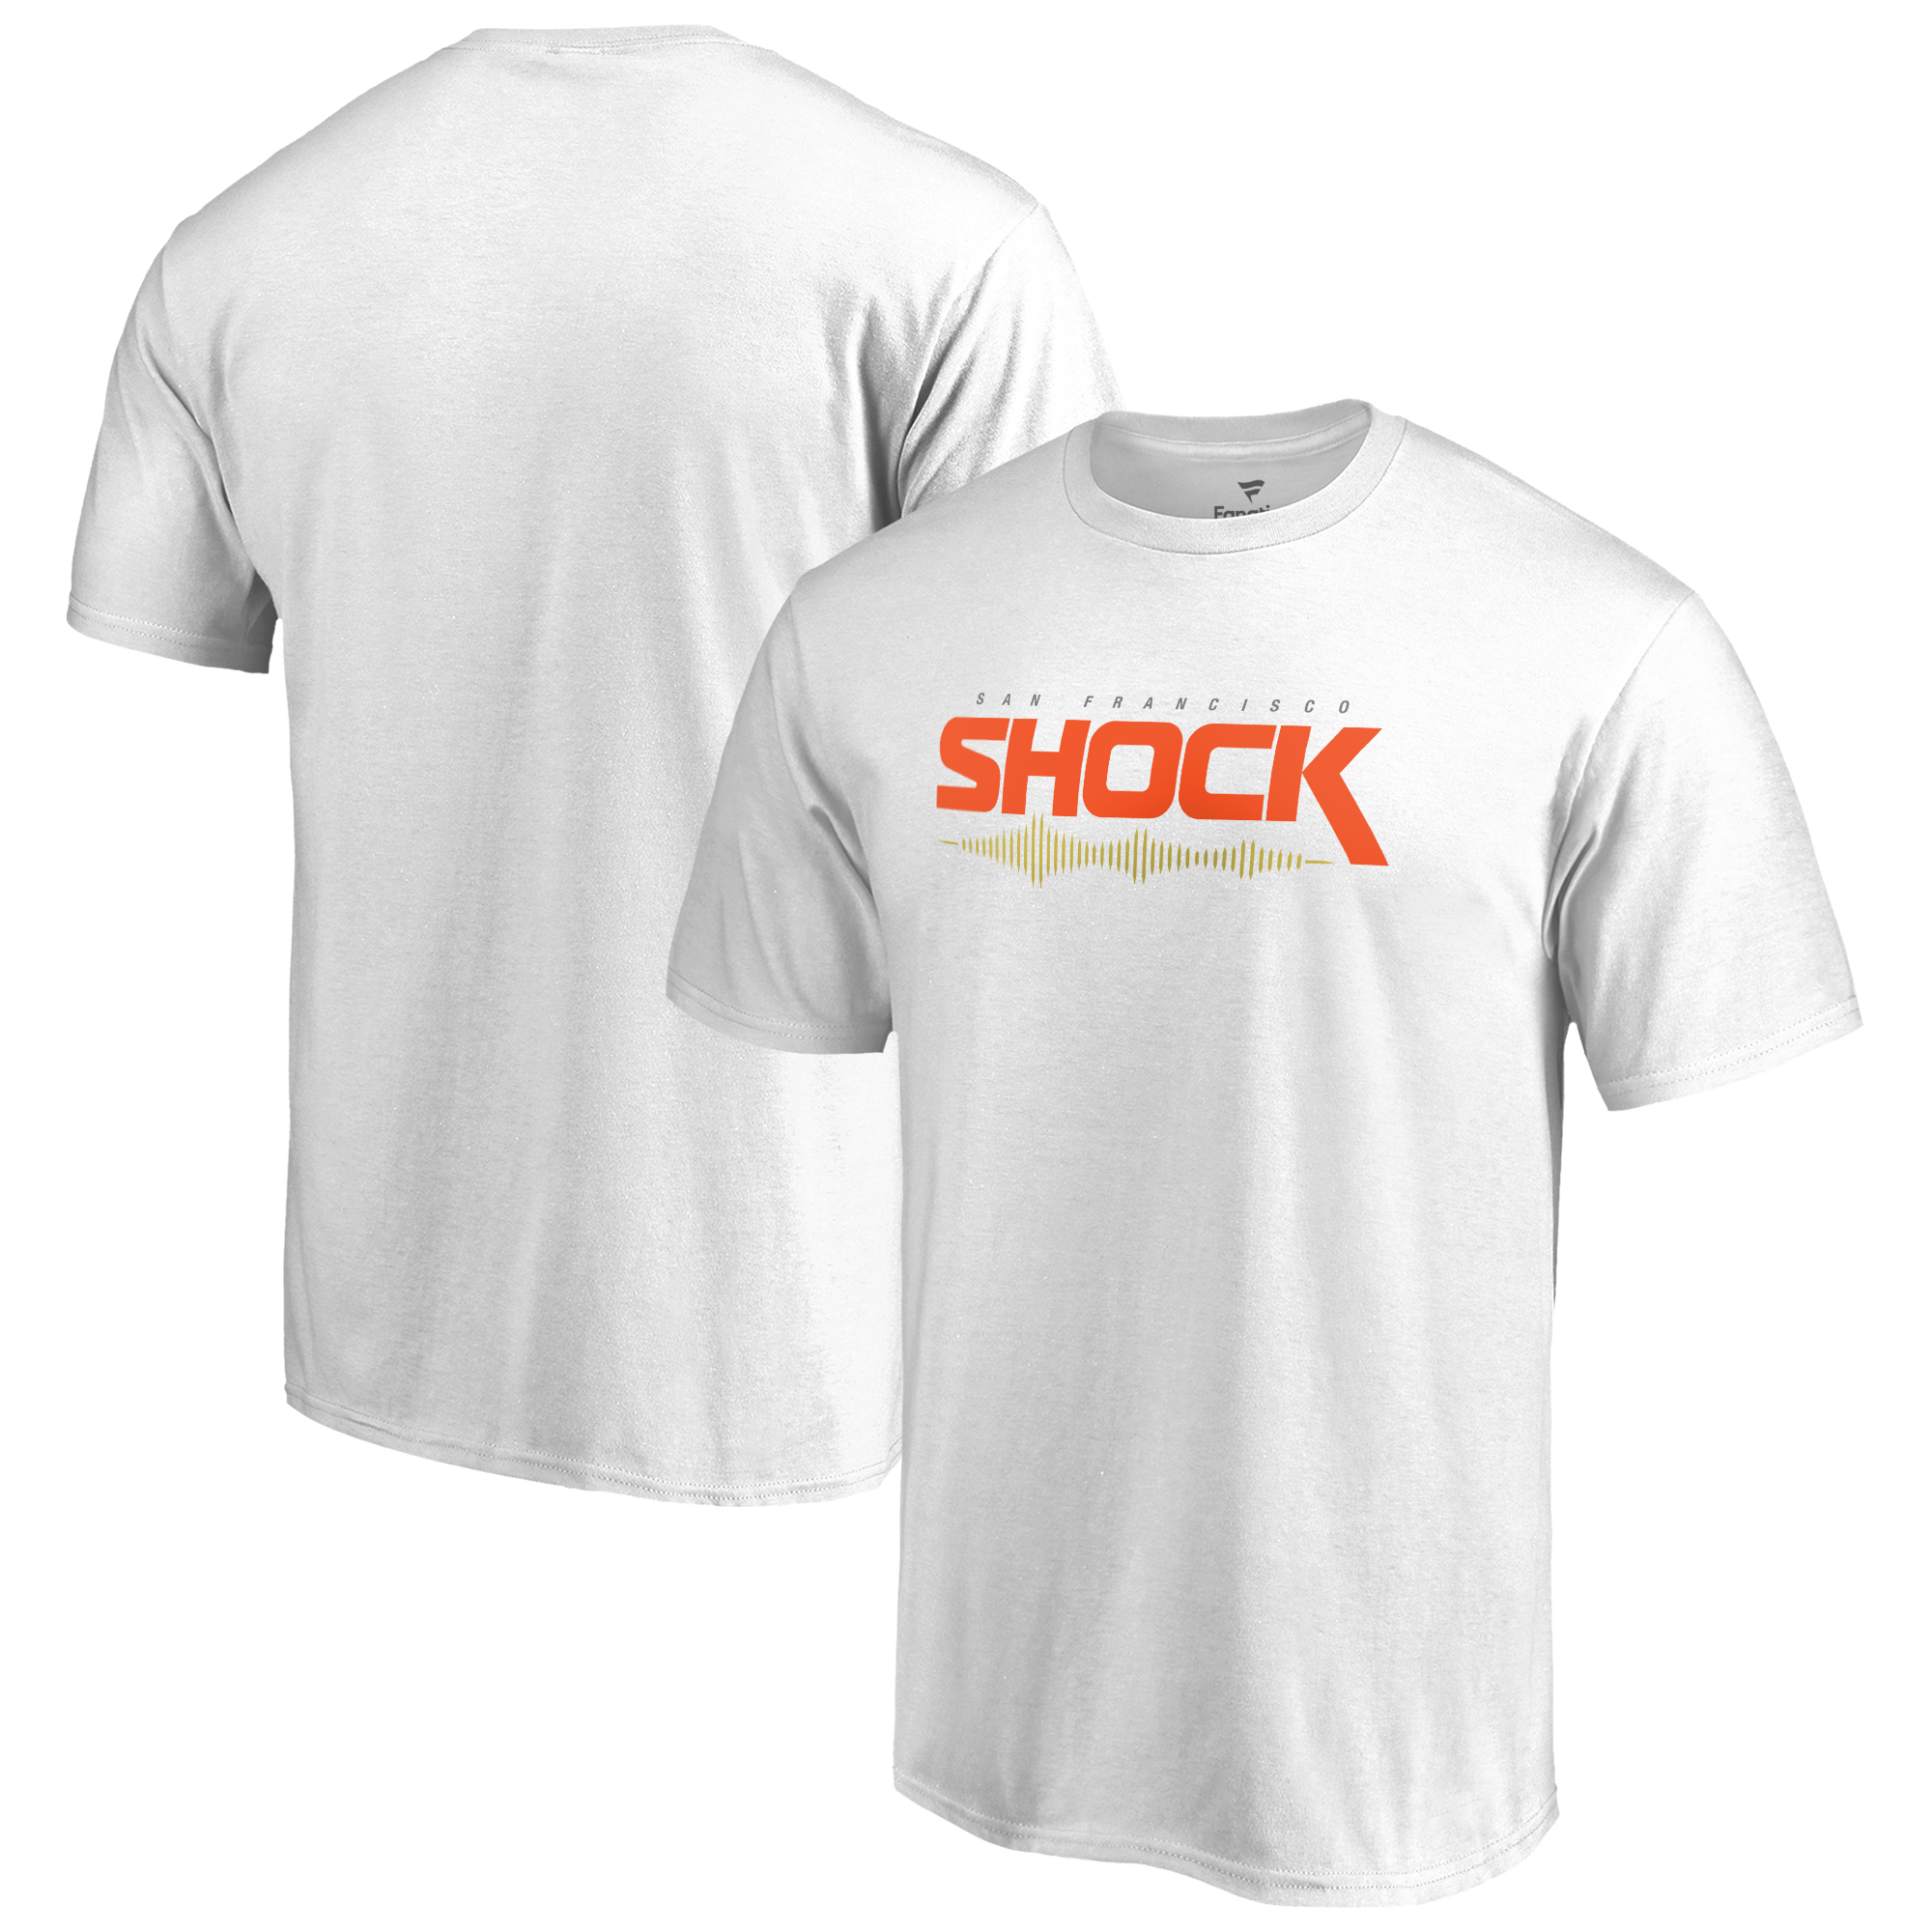 San Francisco Shock Fanatics Branded Team Identity T-Shirt - White